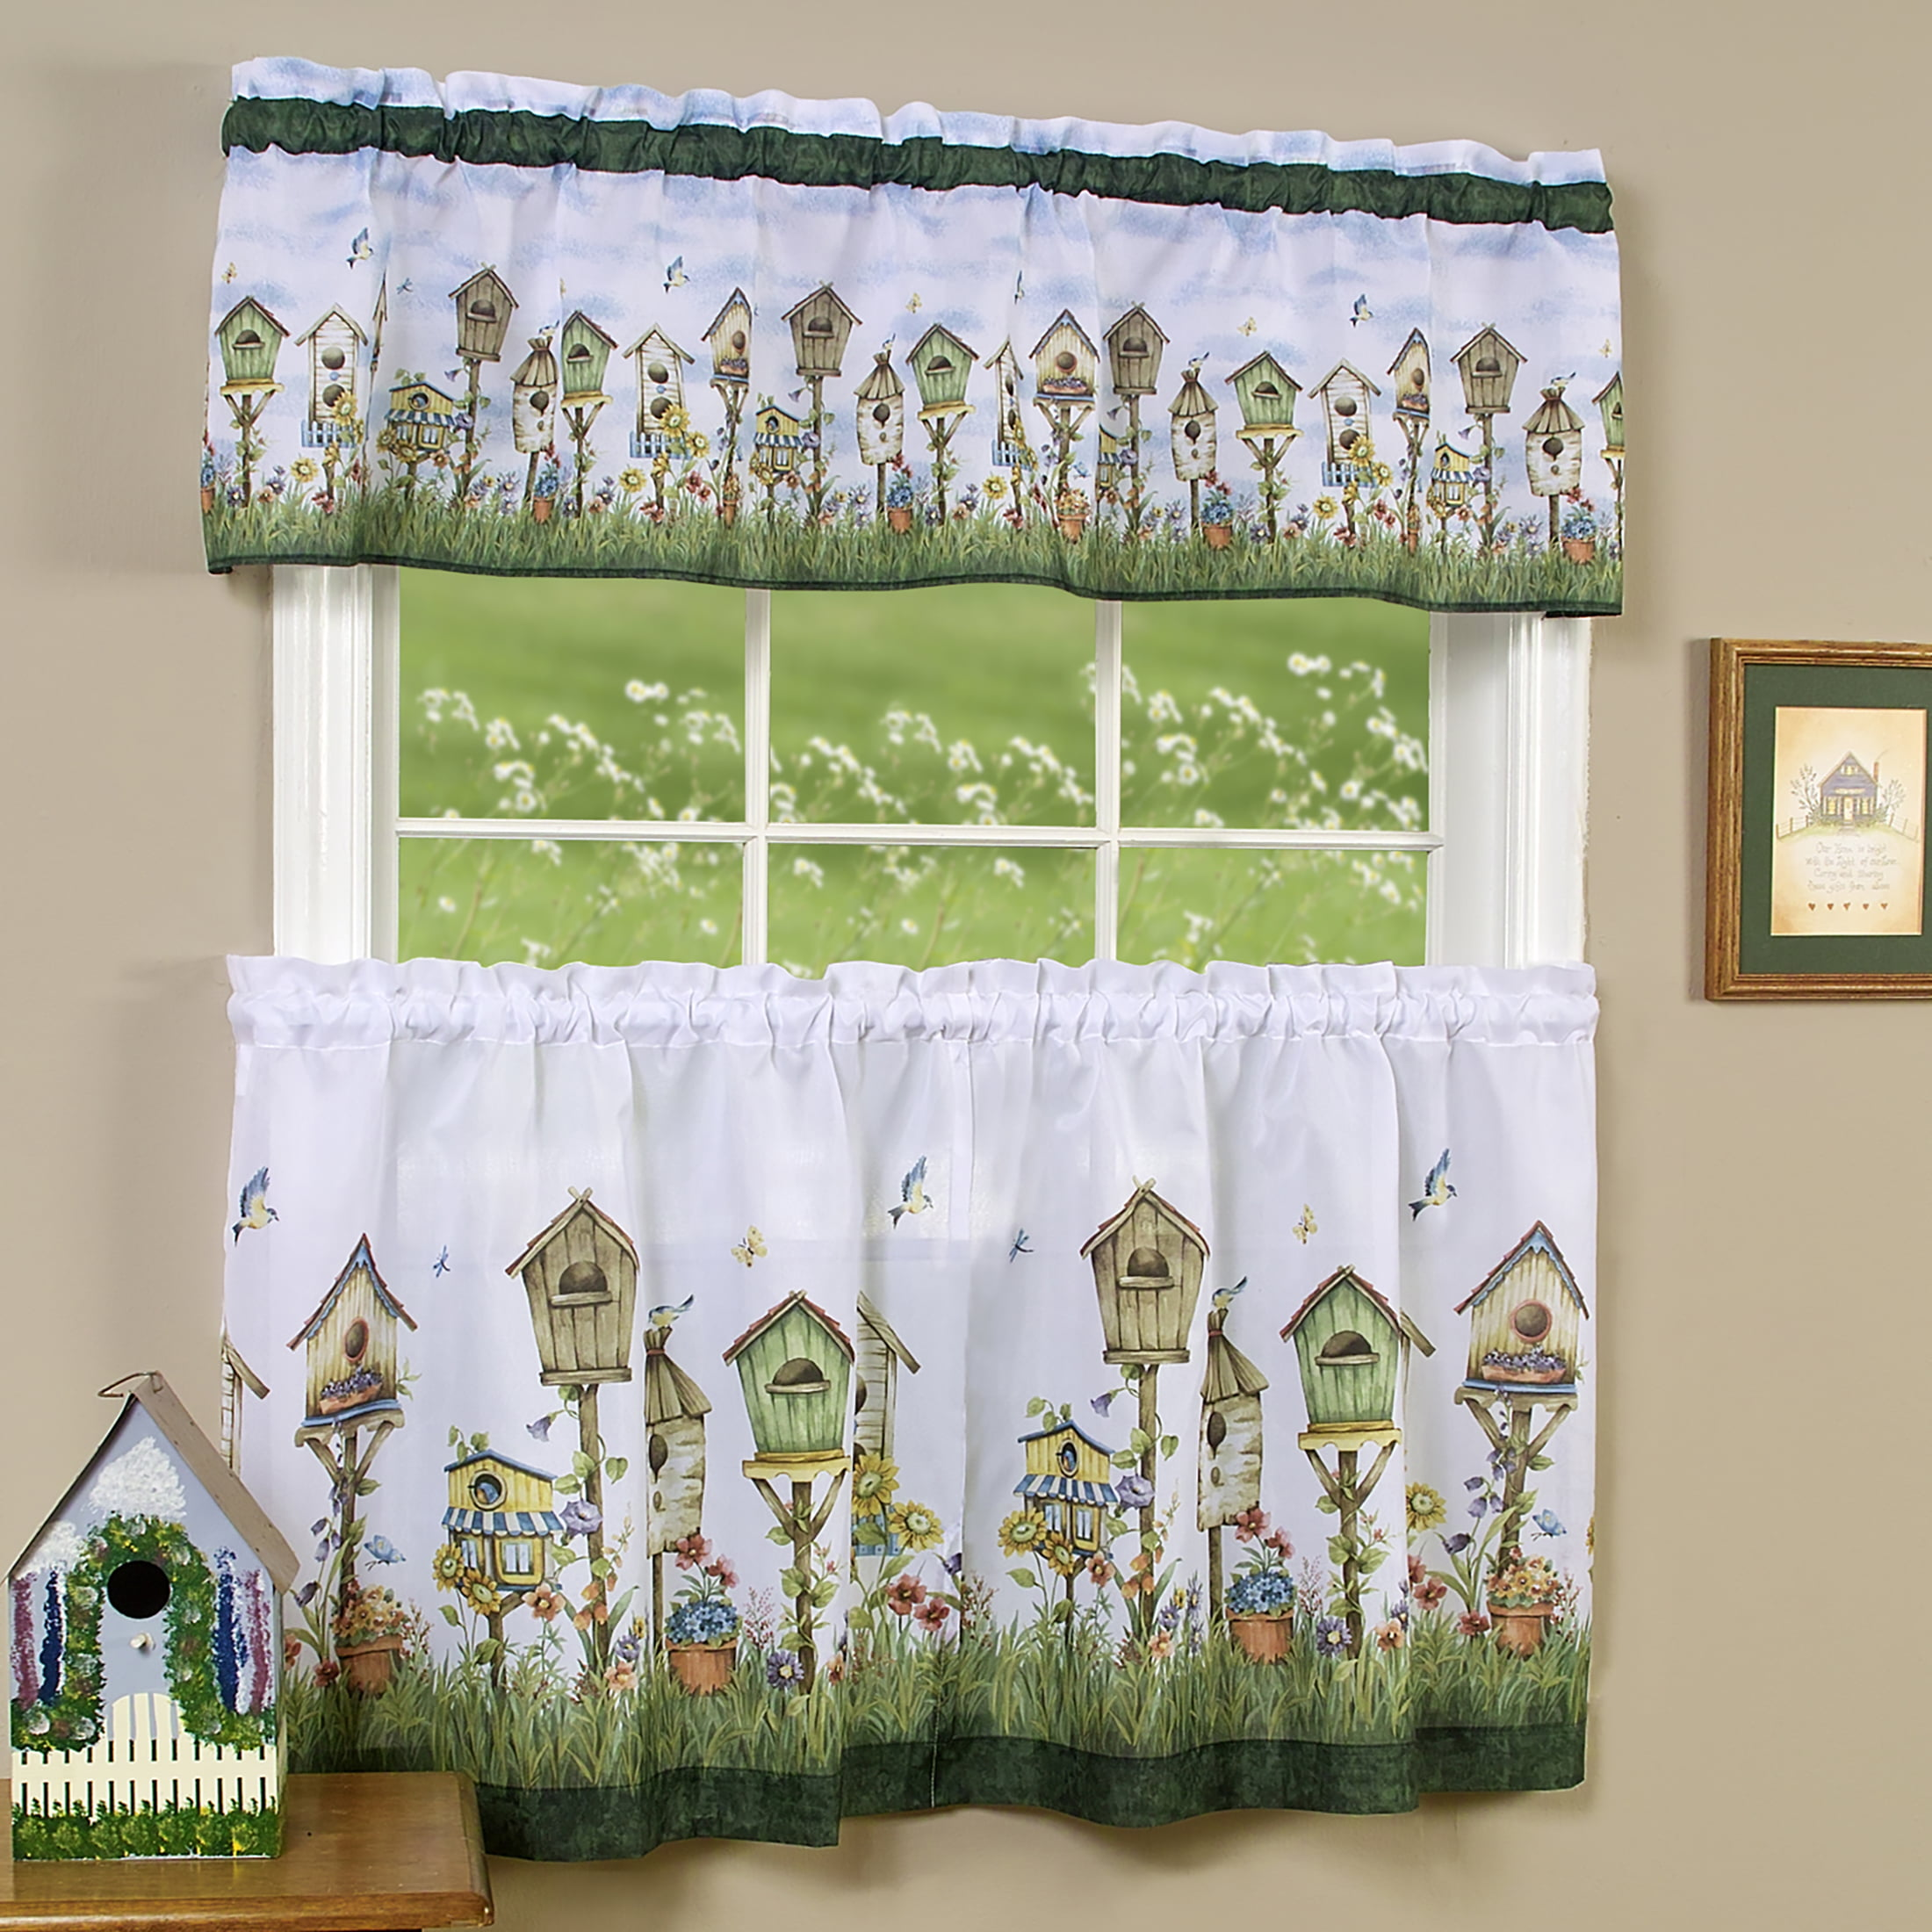 Powersellerusa 3 Piece Kitchen Curtains And Valance Set Rustic Birdhouses Cafe Curtains Farmhouse Bathroom And Kitchen Decor Set Birdhouse Garden Walmart Com Walmart Com